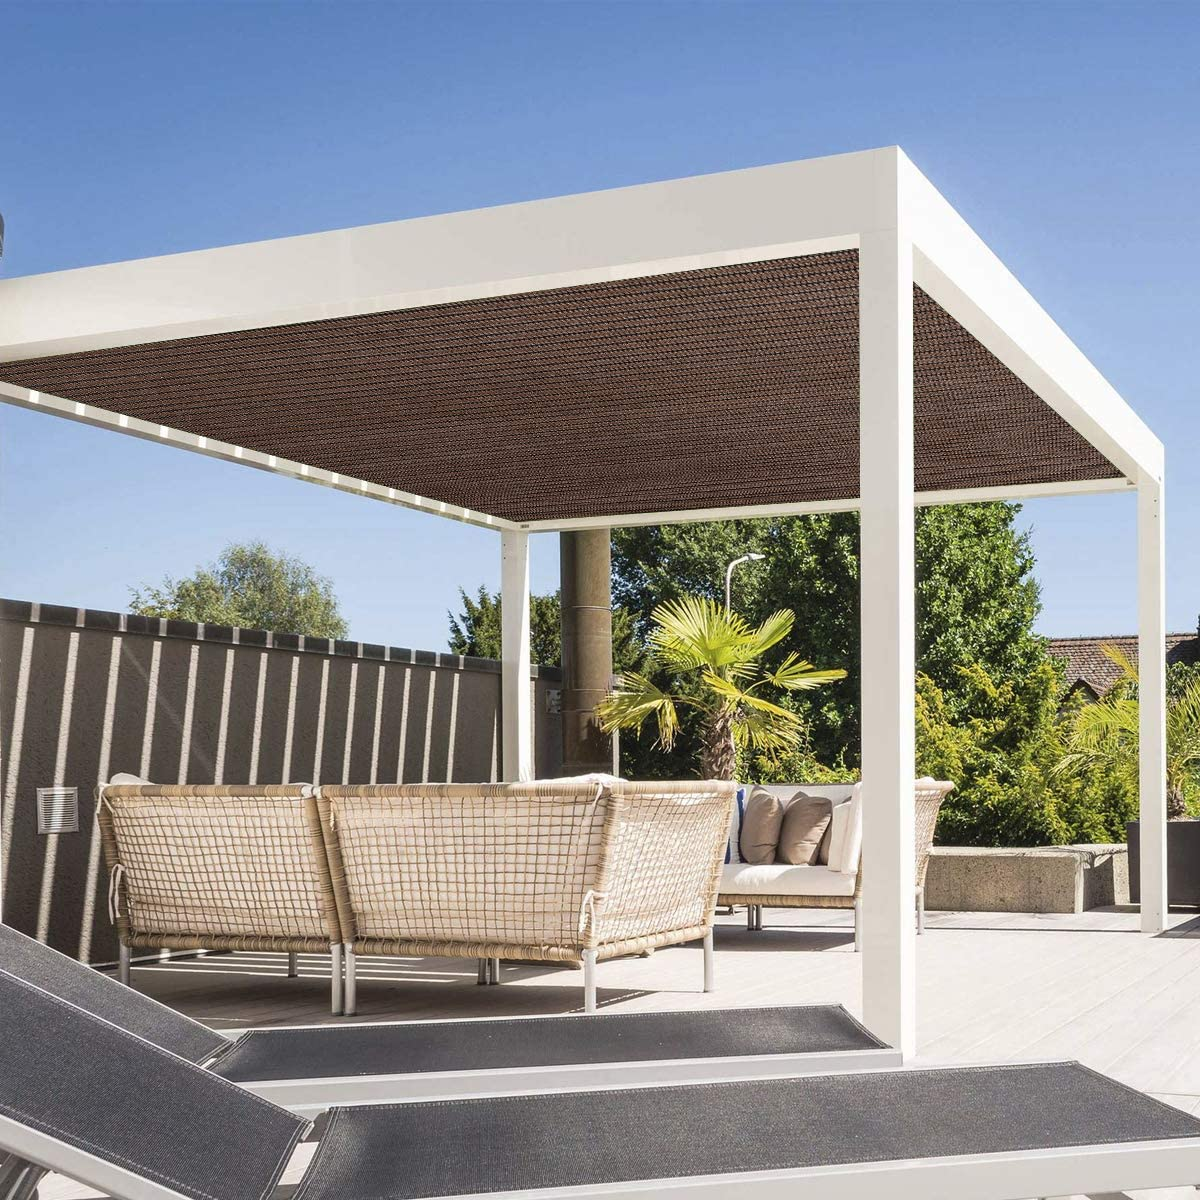 Edens Decor - Toldo Rectangular con Bordes Planos, Bloqueo UV ...